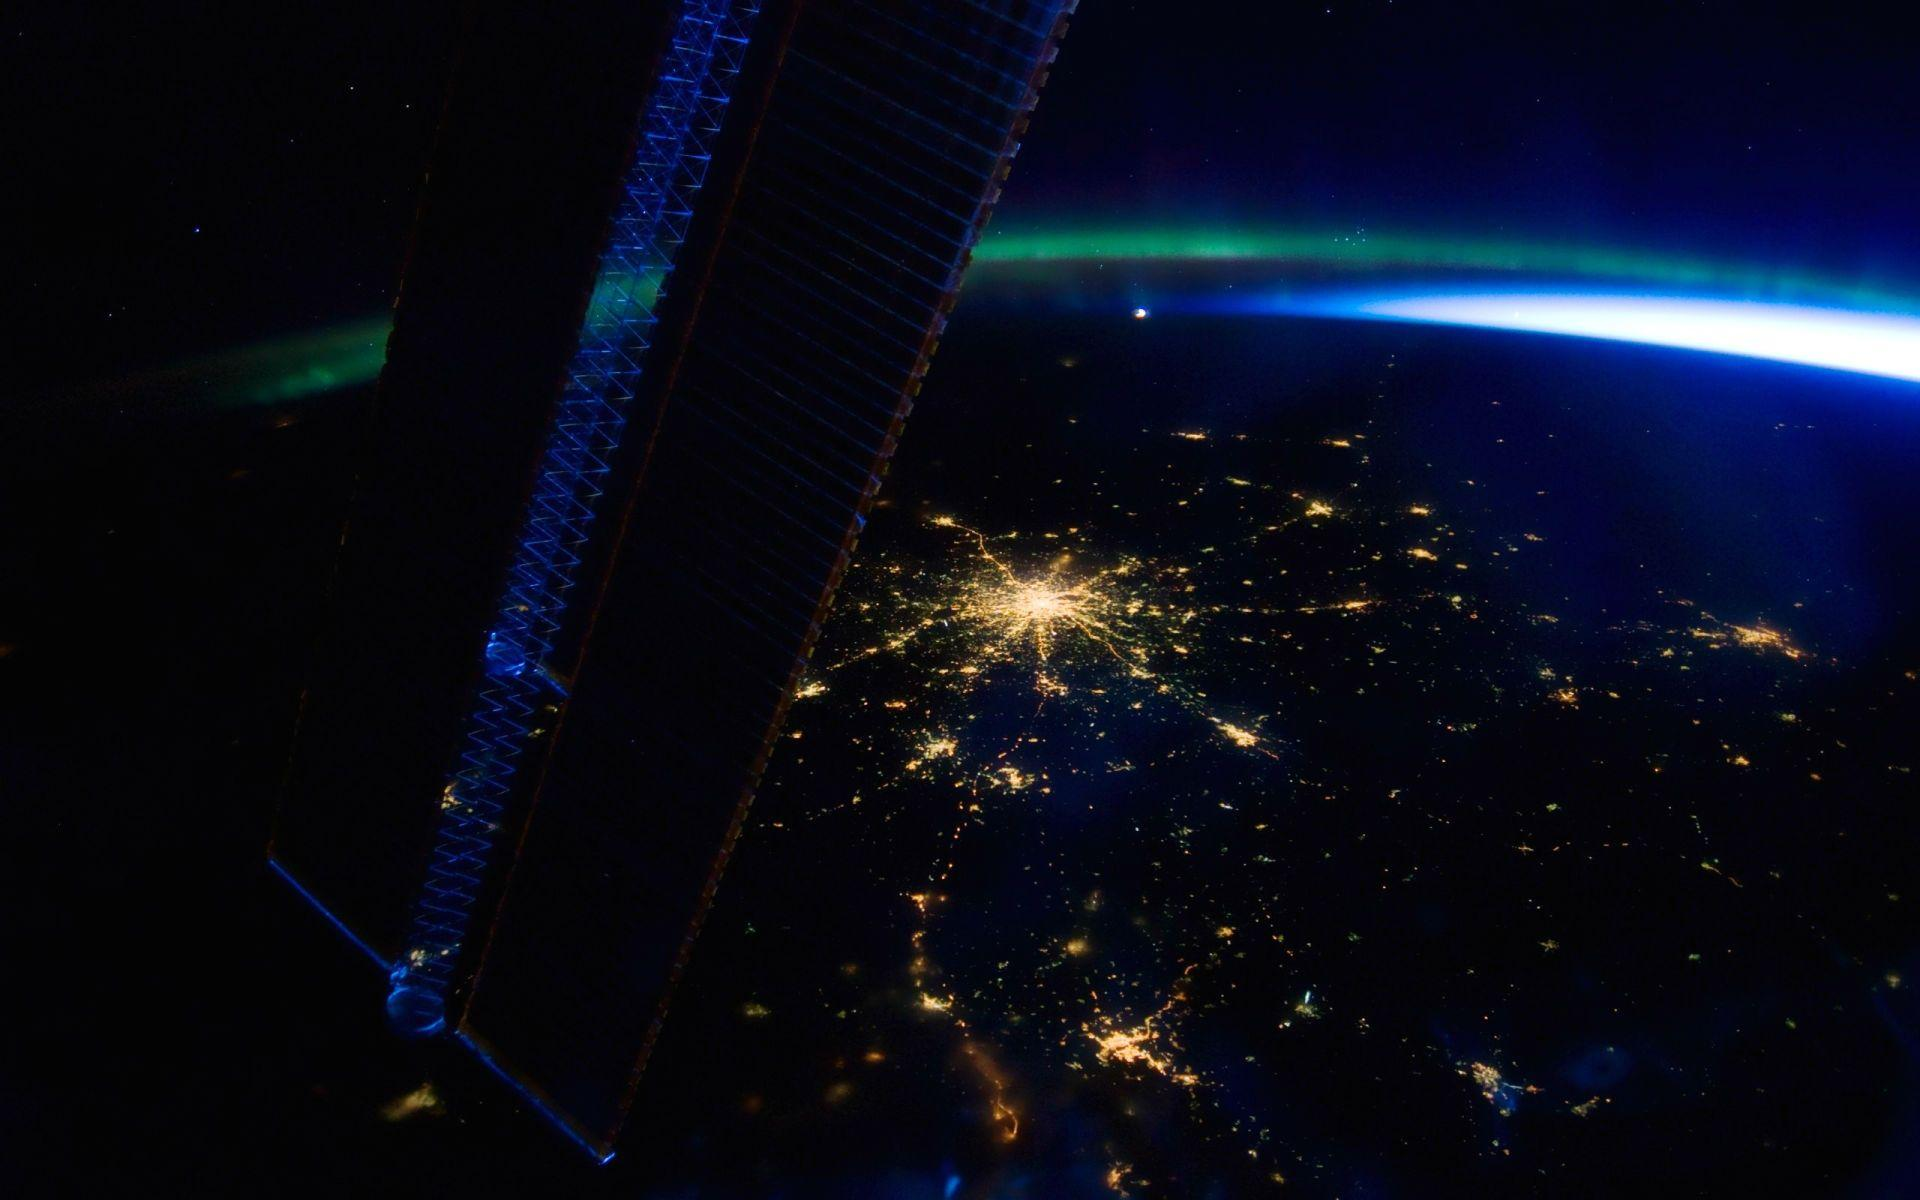 international space station from ground at night - photo #15